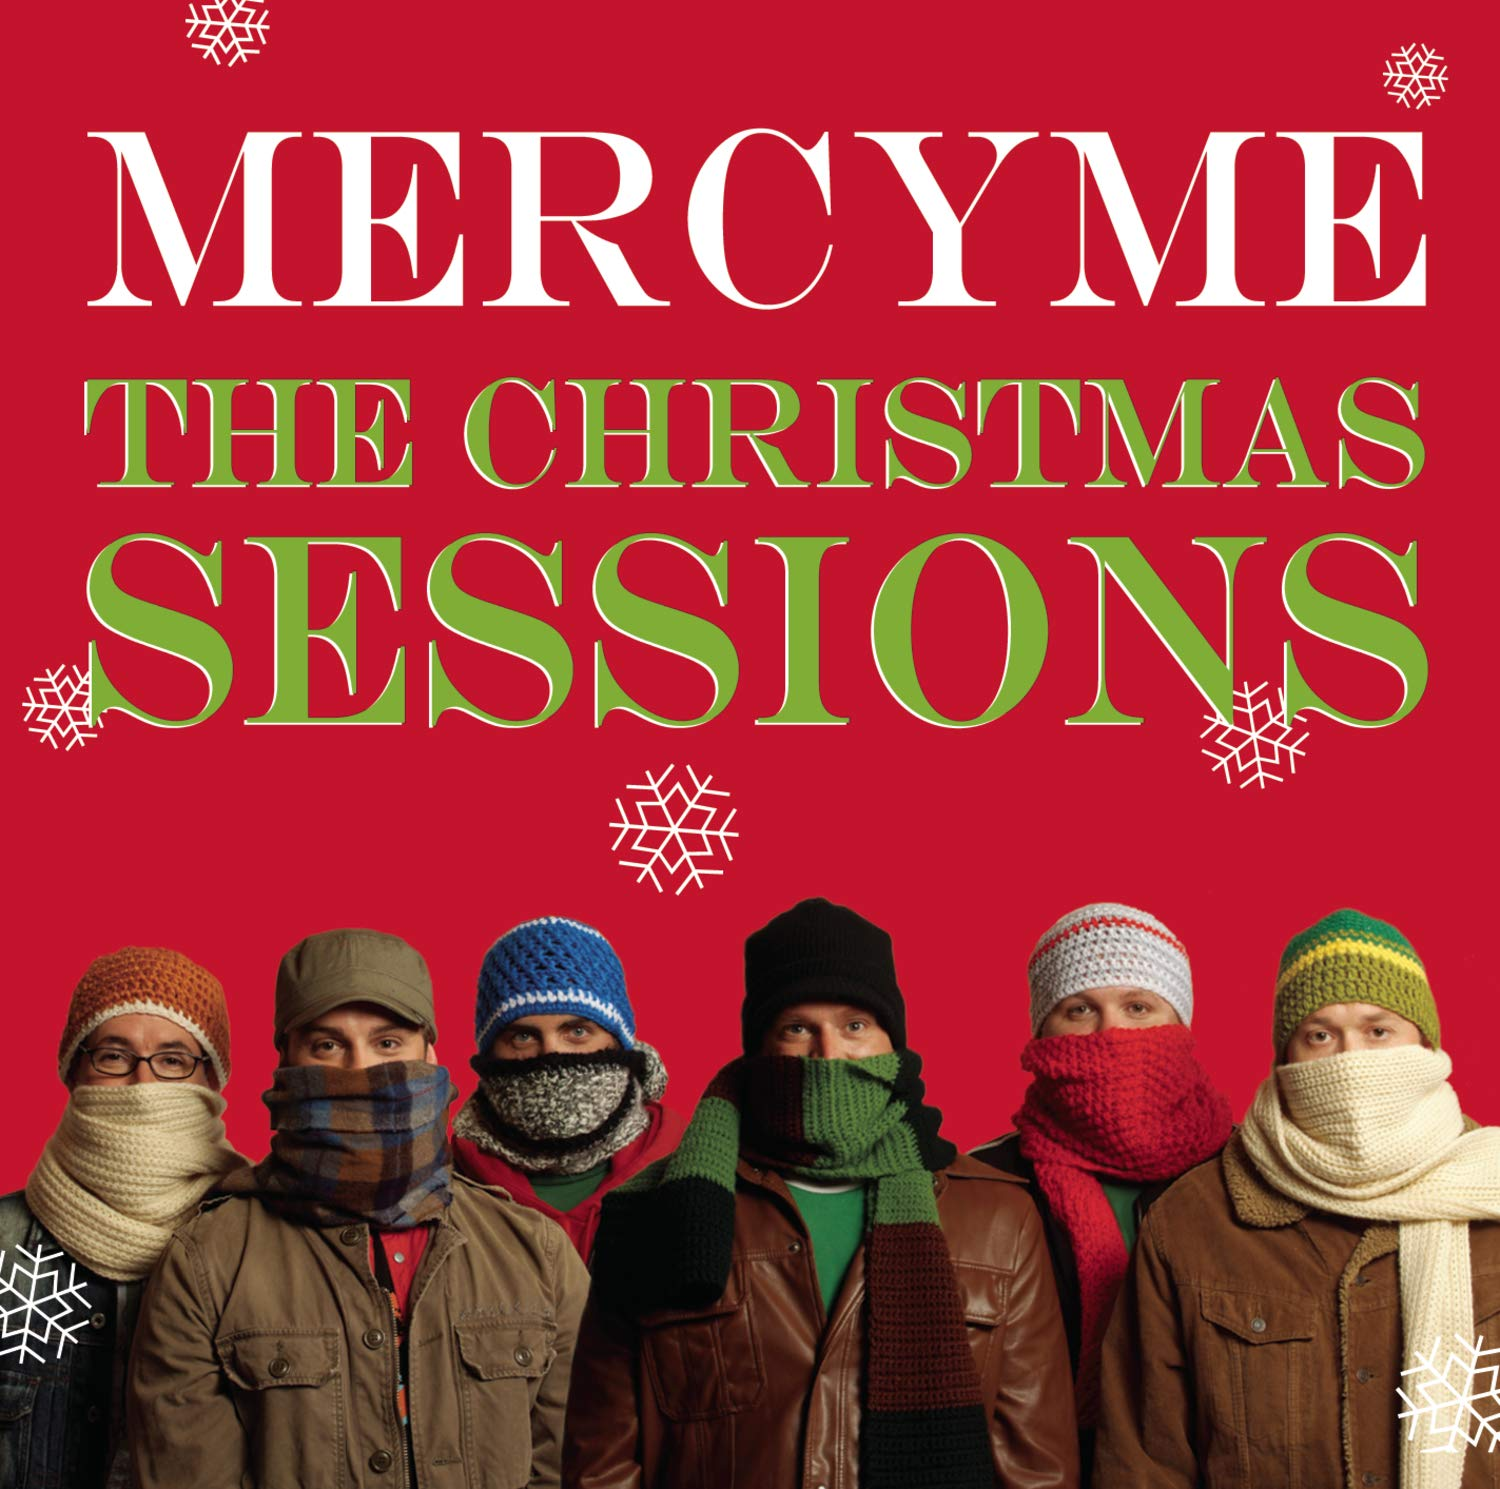 Mercyme, Mercy Me - The Christmas Sessions - Amazon.com Music